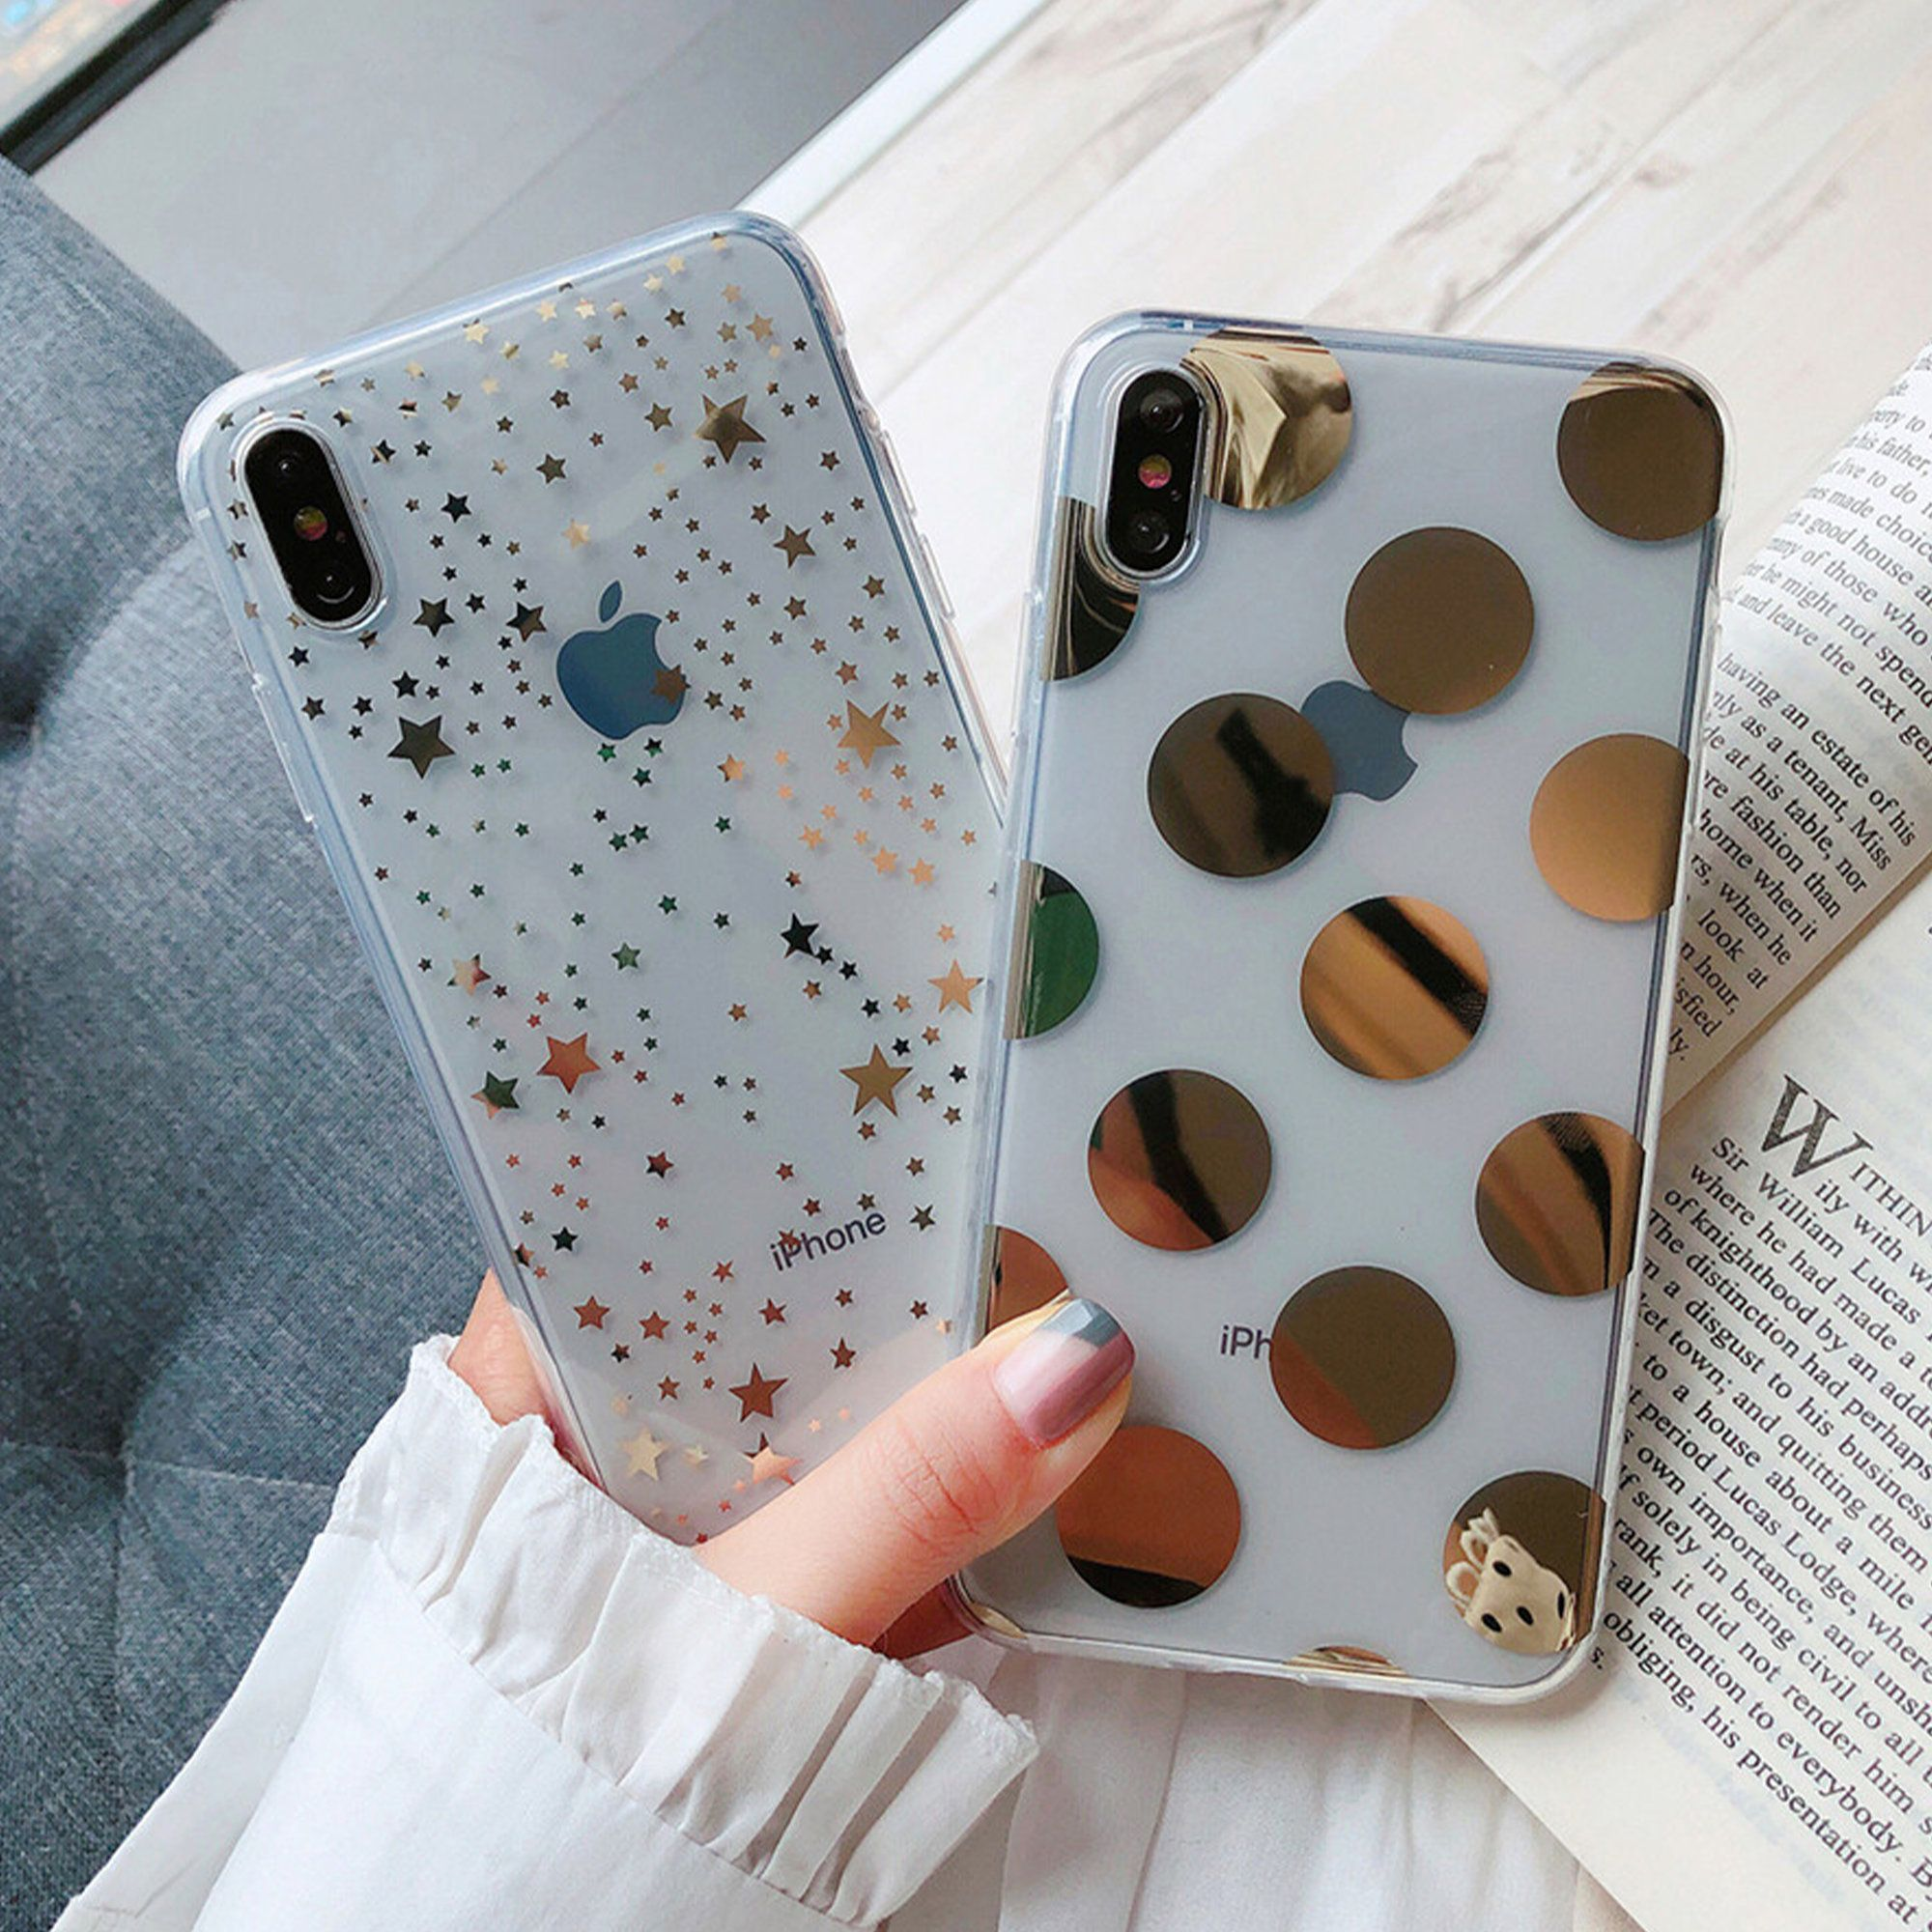 Glitter Silver Clear Case Iphone 12 11 Pattern Soft Flexible Etsy In 2021 Iphone Phone Cases Transparent Phone Case Pretty Iphone Cases